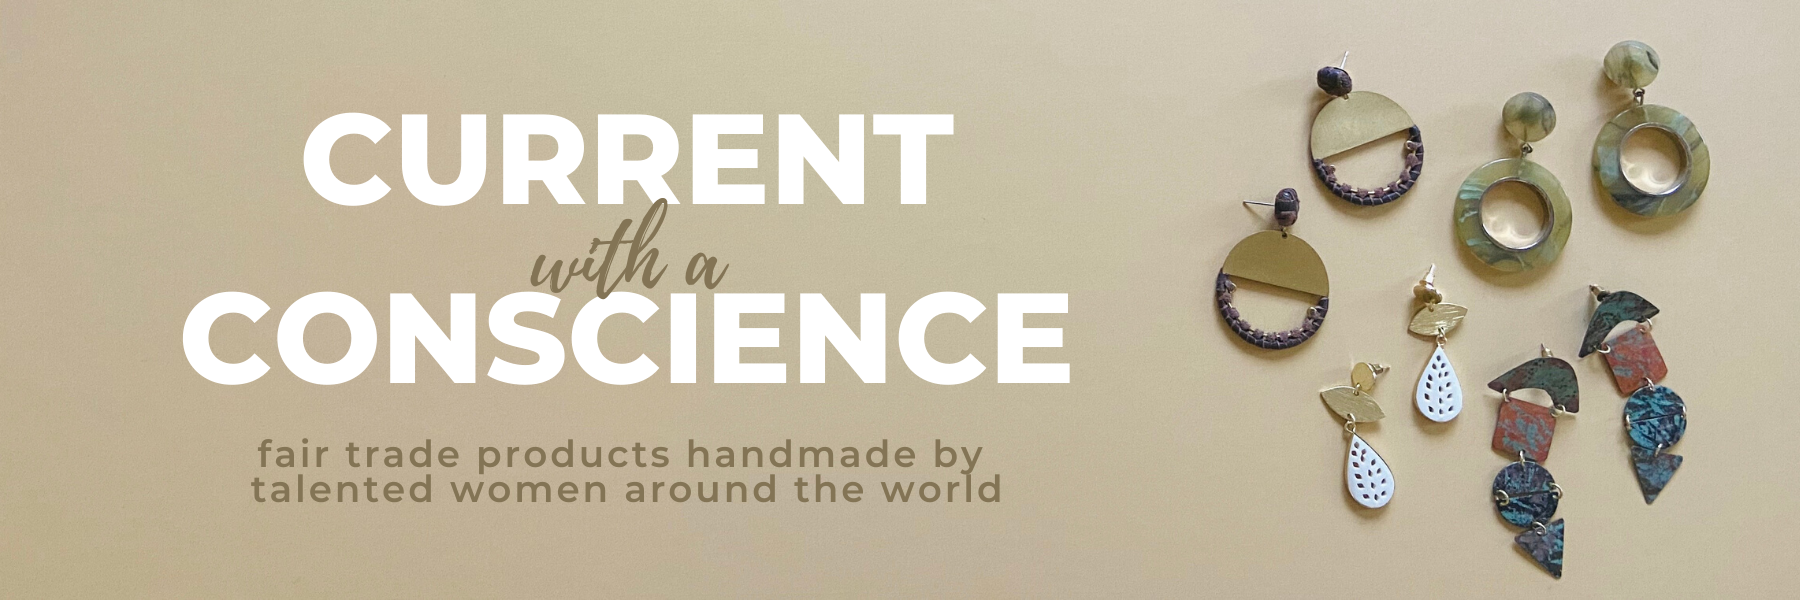 fair trade products handmade by talented women around the world | Fair Anita